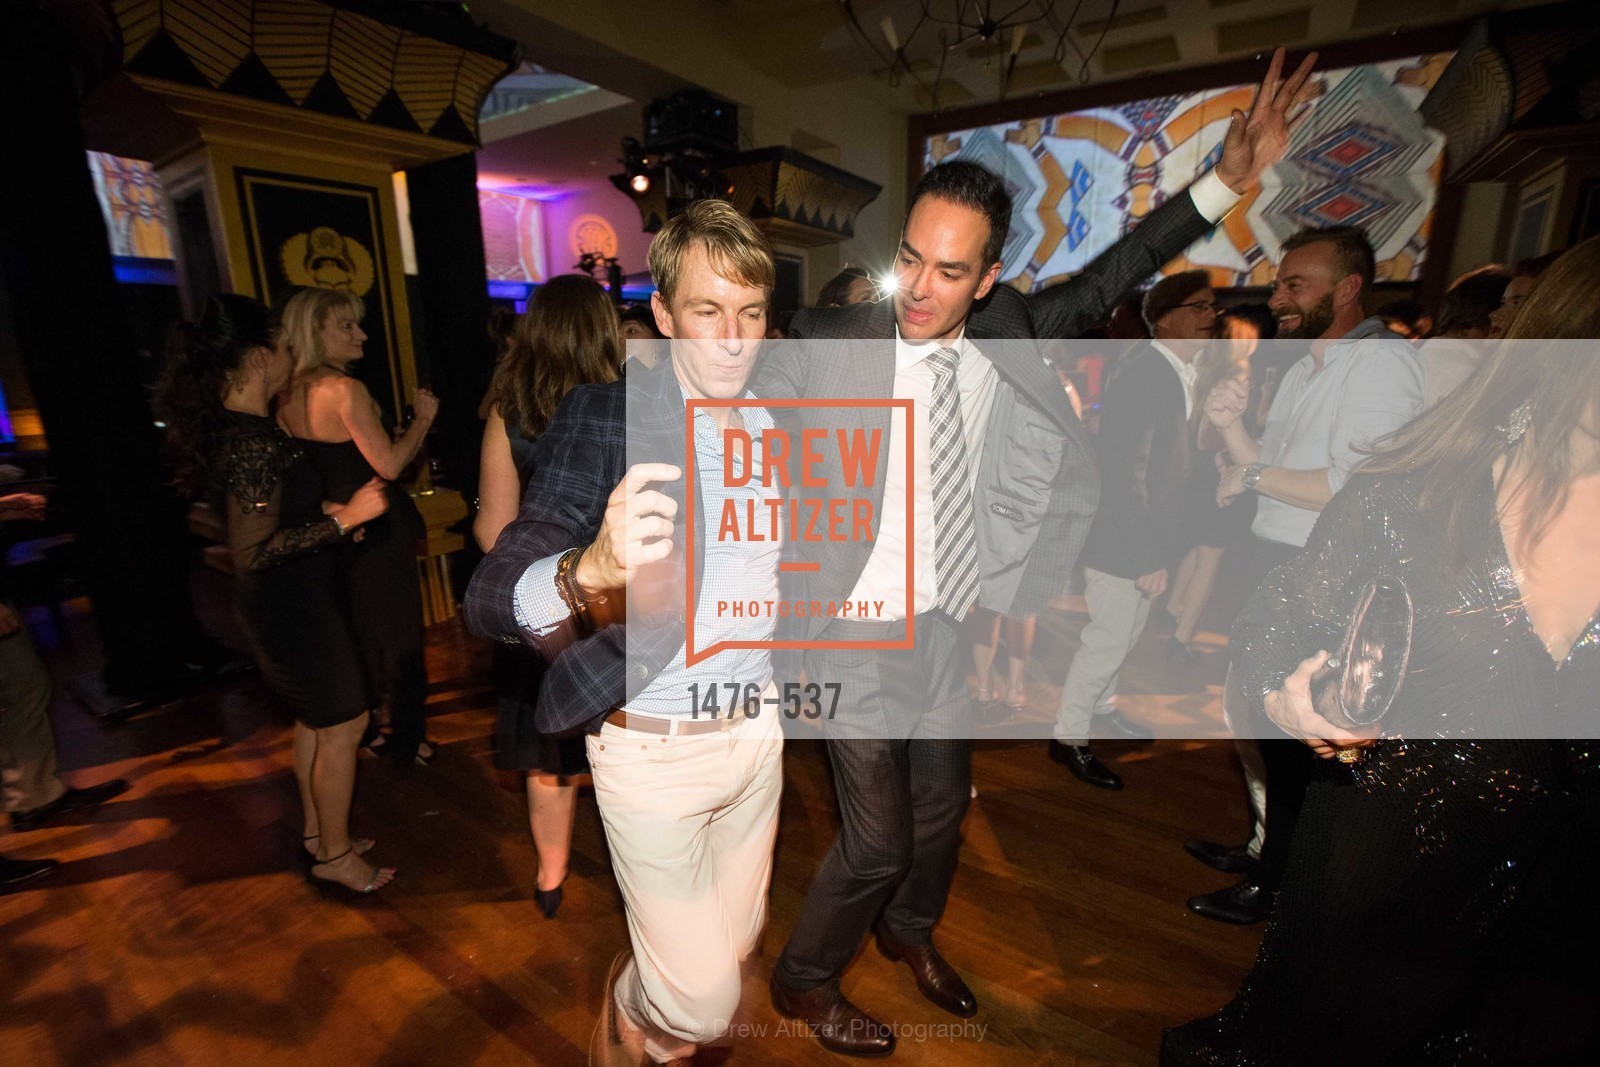 Jack Calhoun, Greg Lopez, TOP OF THE MARK'S 75TH Anniversary Party, US, November 7th, 2014,Drew Altizer, Drew Altizer Photography, full-service agency, private events, San Francisco photographer, photographer california